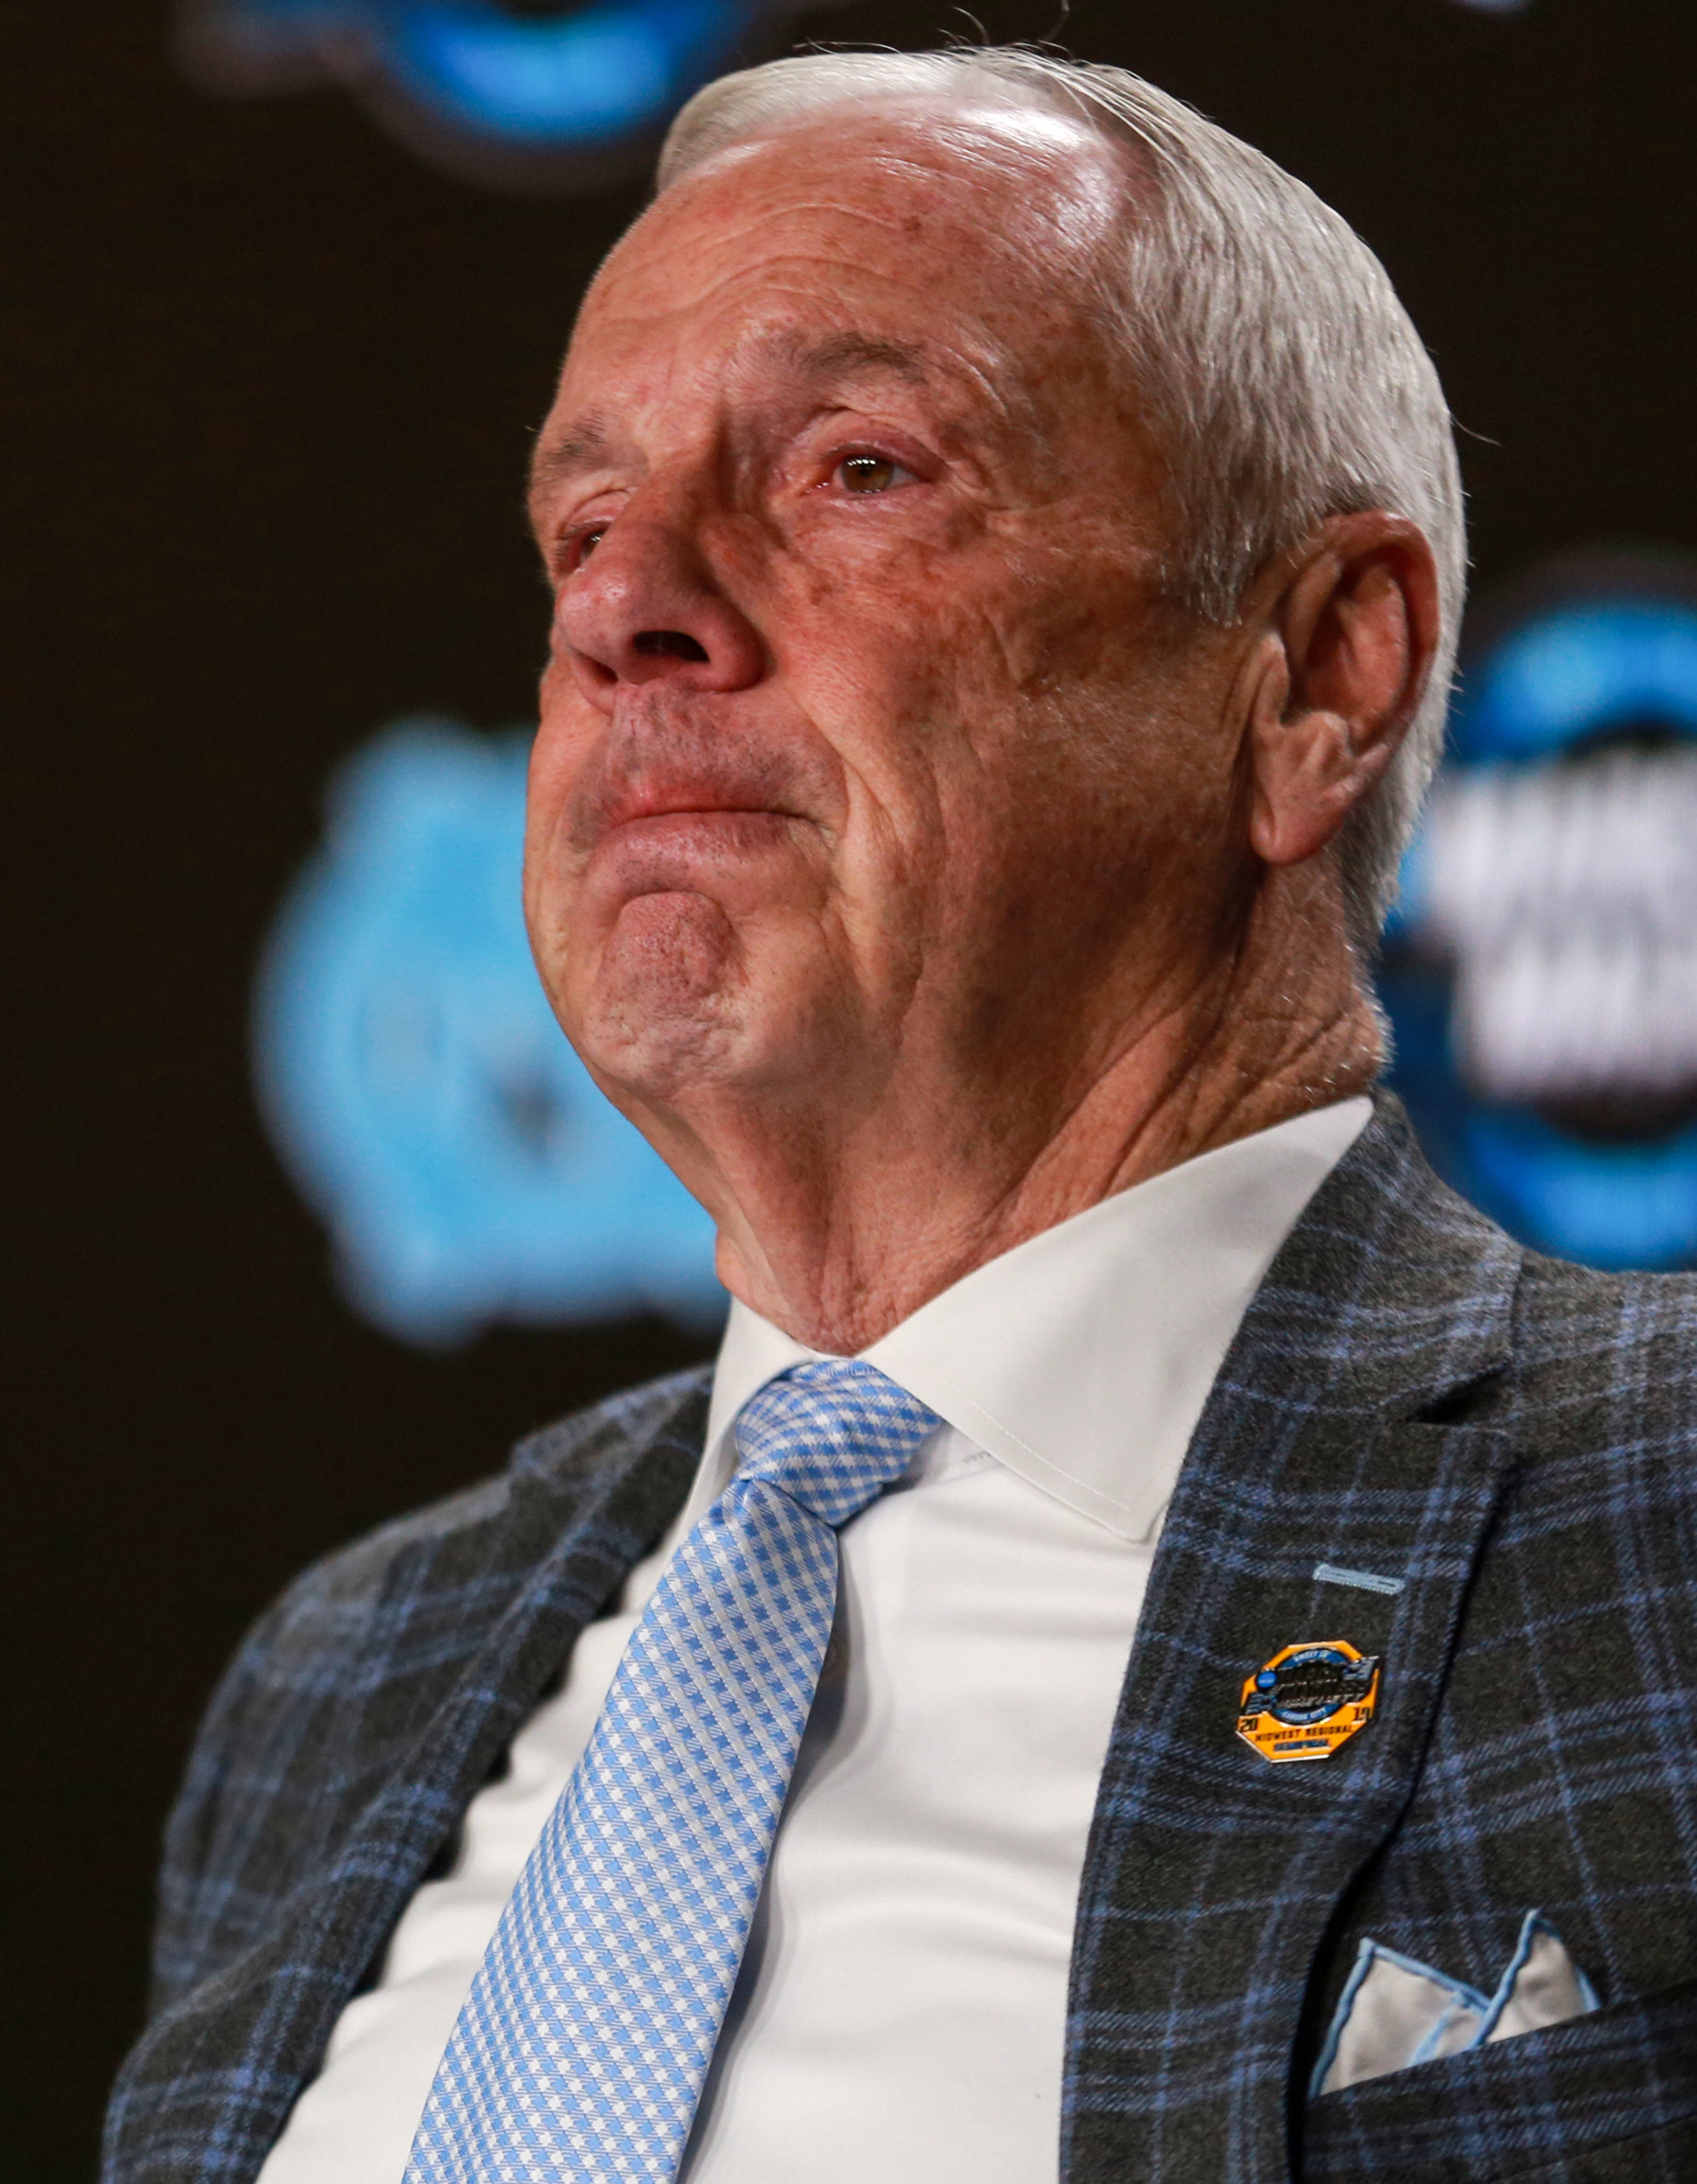 Roy Williams was understandably upset on the podium following UNC's Sweet 16 loss to Auburn. The class of 2019 (Williams and Maye) finished as the third most winning class in Carolina Basketball history. | Photo by Alex Kormann